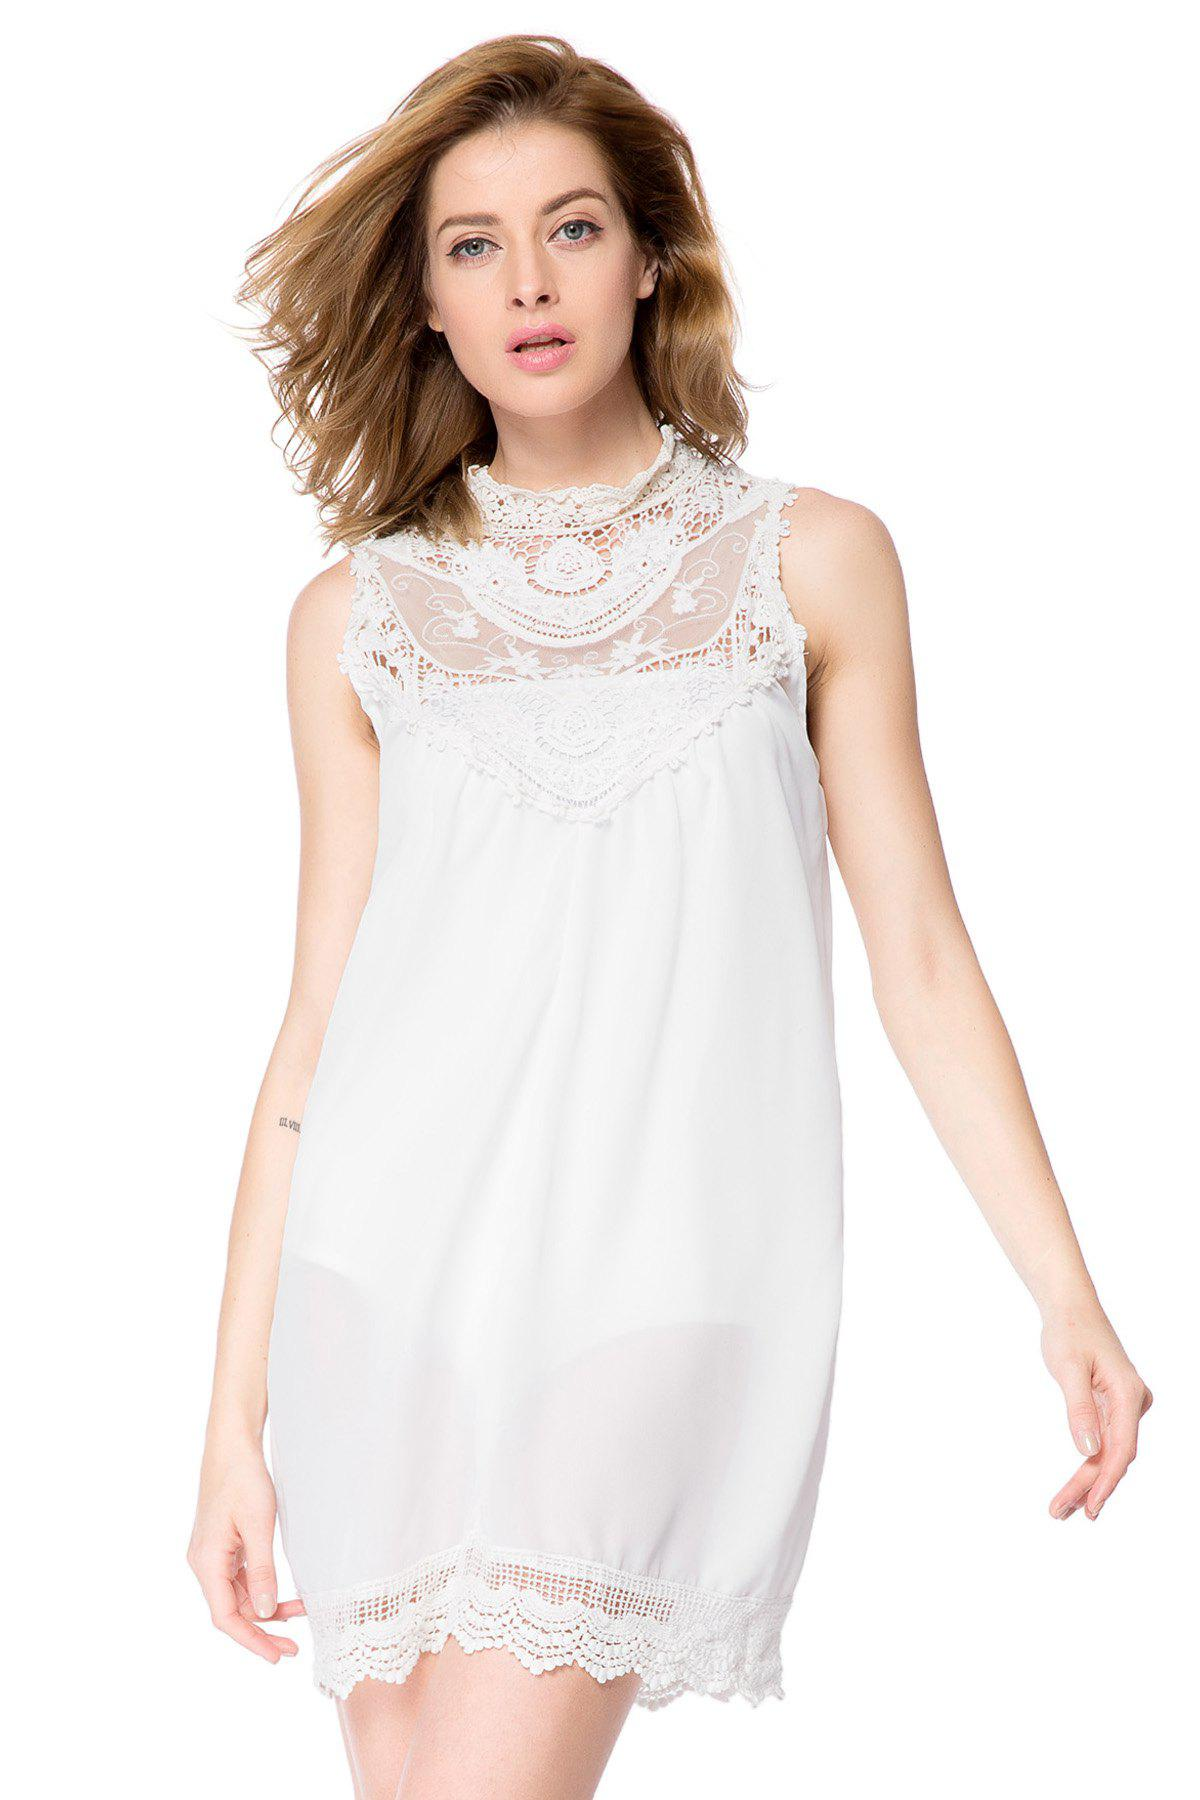 Fashion Turtle Neck Short Sleeveless Lace Dress